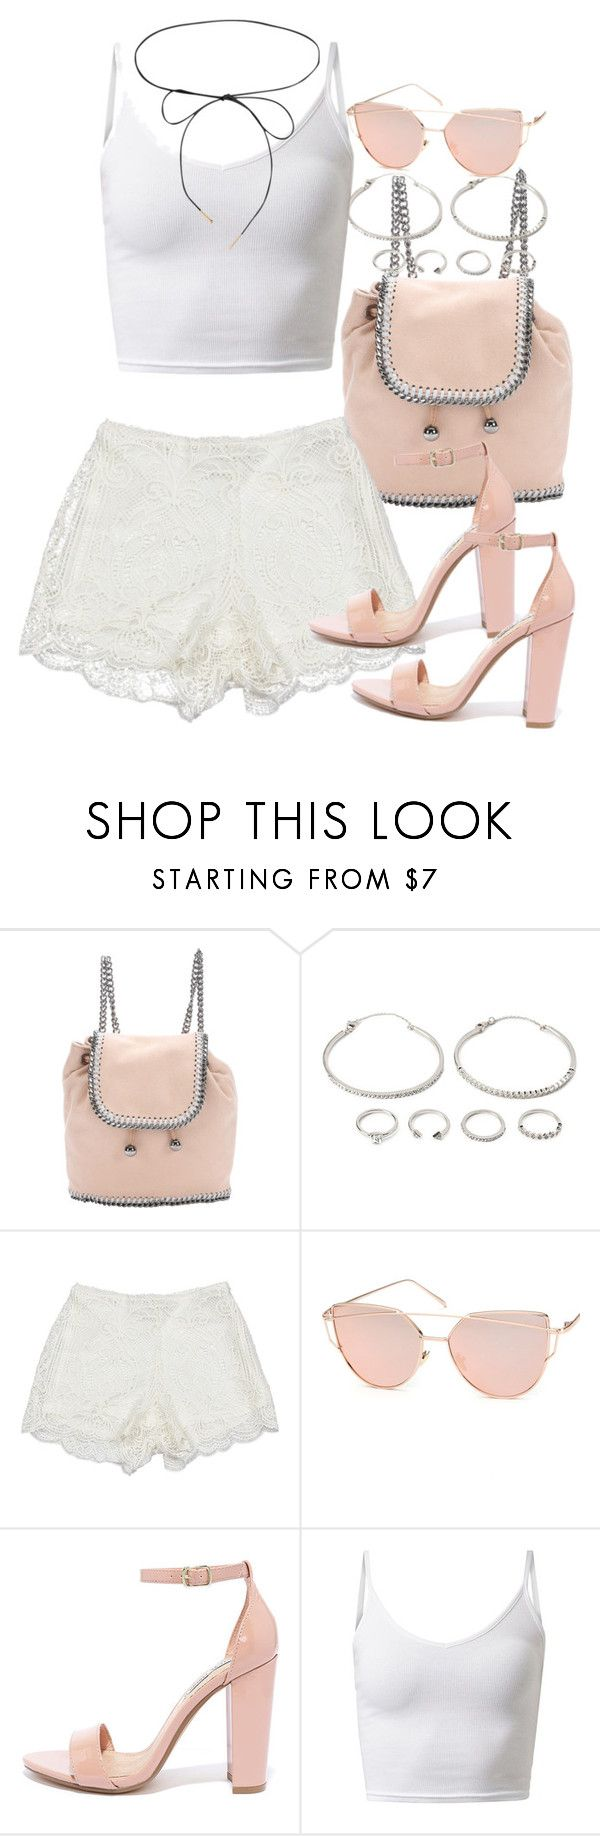 """""""NEW BLOGPOST ON victoriainspires.blogspot.com"""" by victoriamk ❤ liked on Polyvore featuring STELLA McCARTNEY, Forever 21, Sans Souci, Chicnova Fashion, Steve Madden and Lilou"""